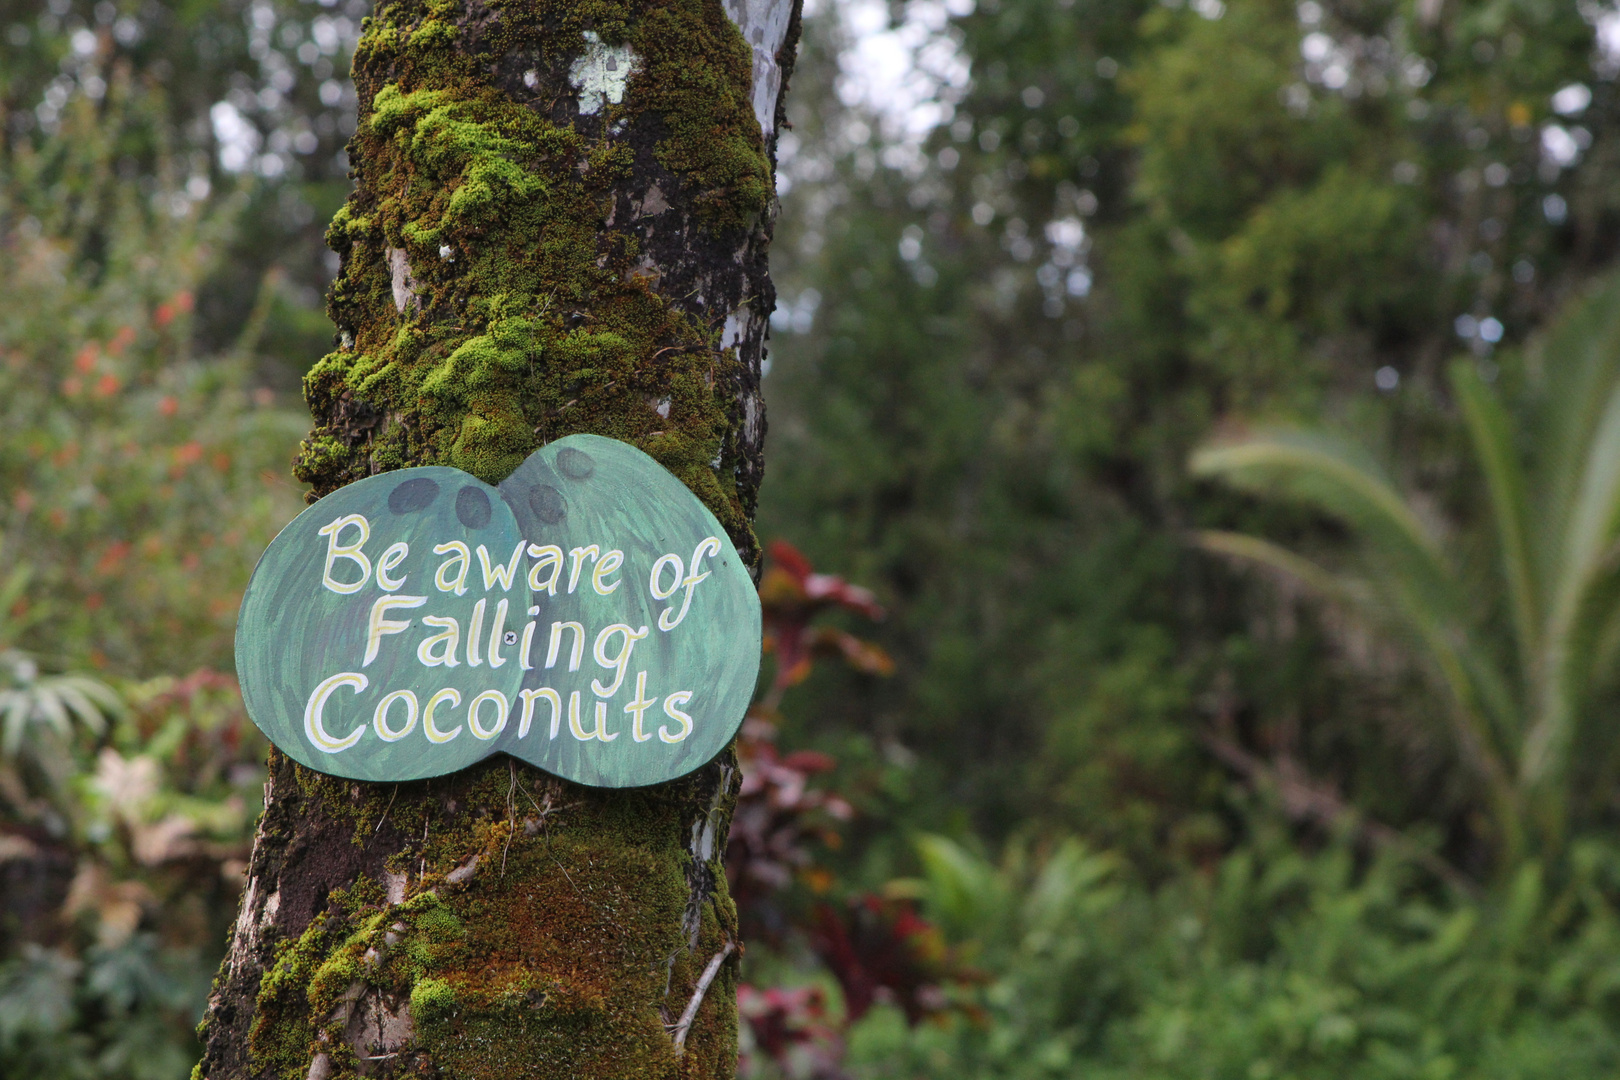 In the garden of our rainbow retreat center